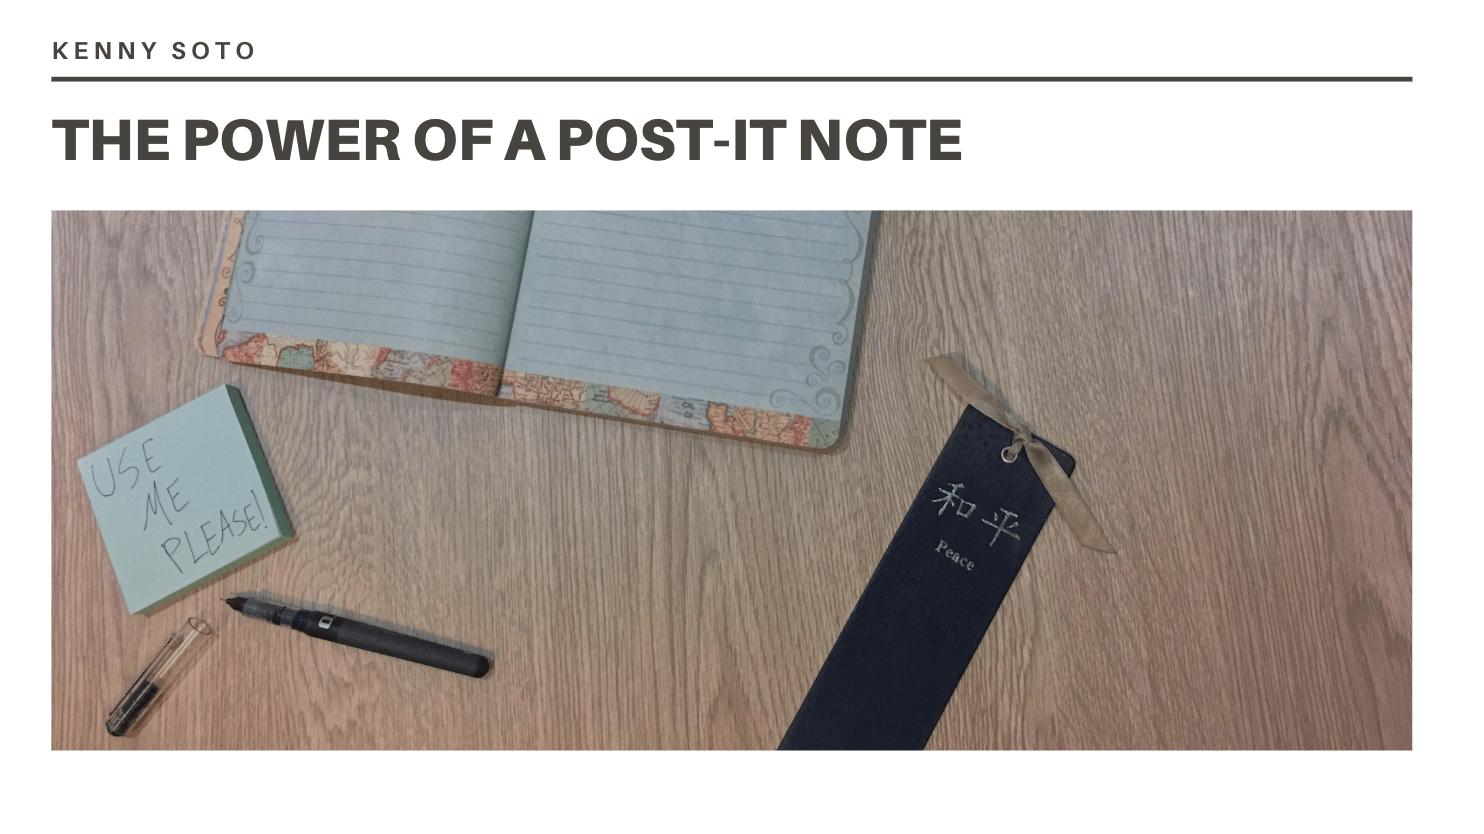 The-Power-of-a-Post-It-Note-Kenny-Soto